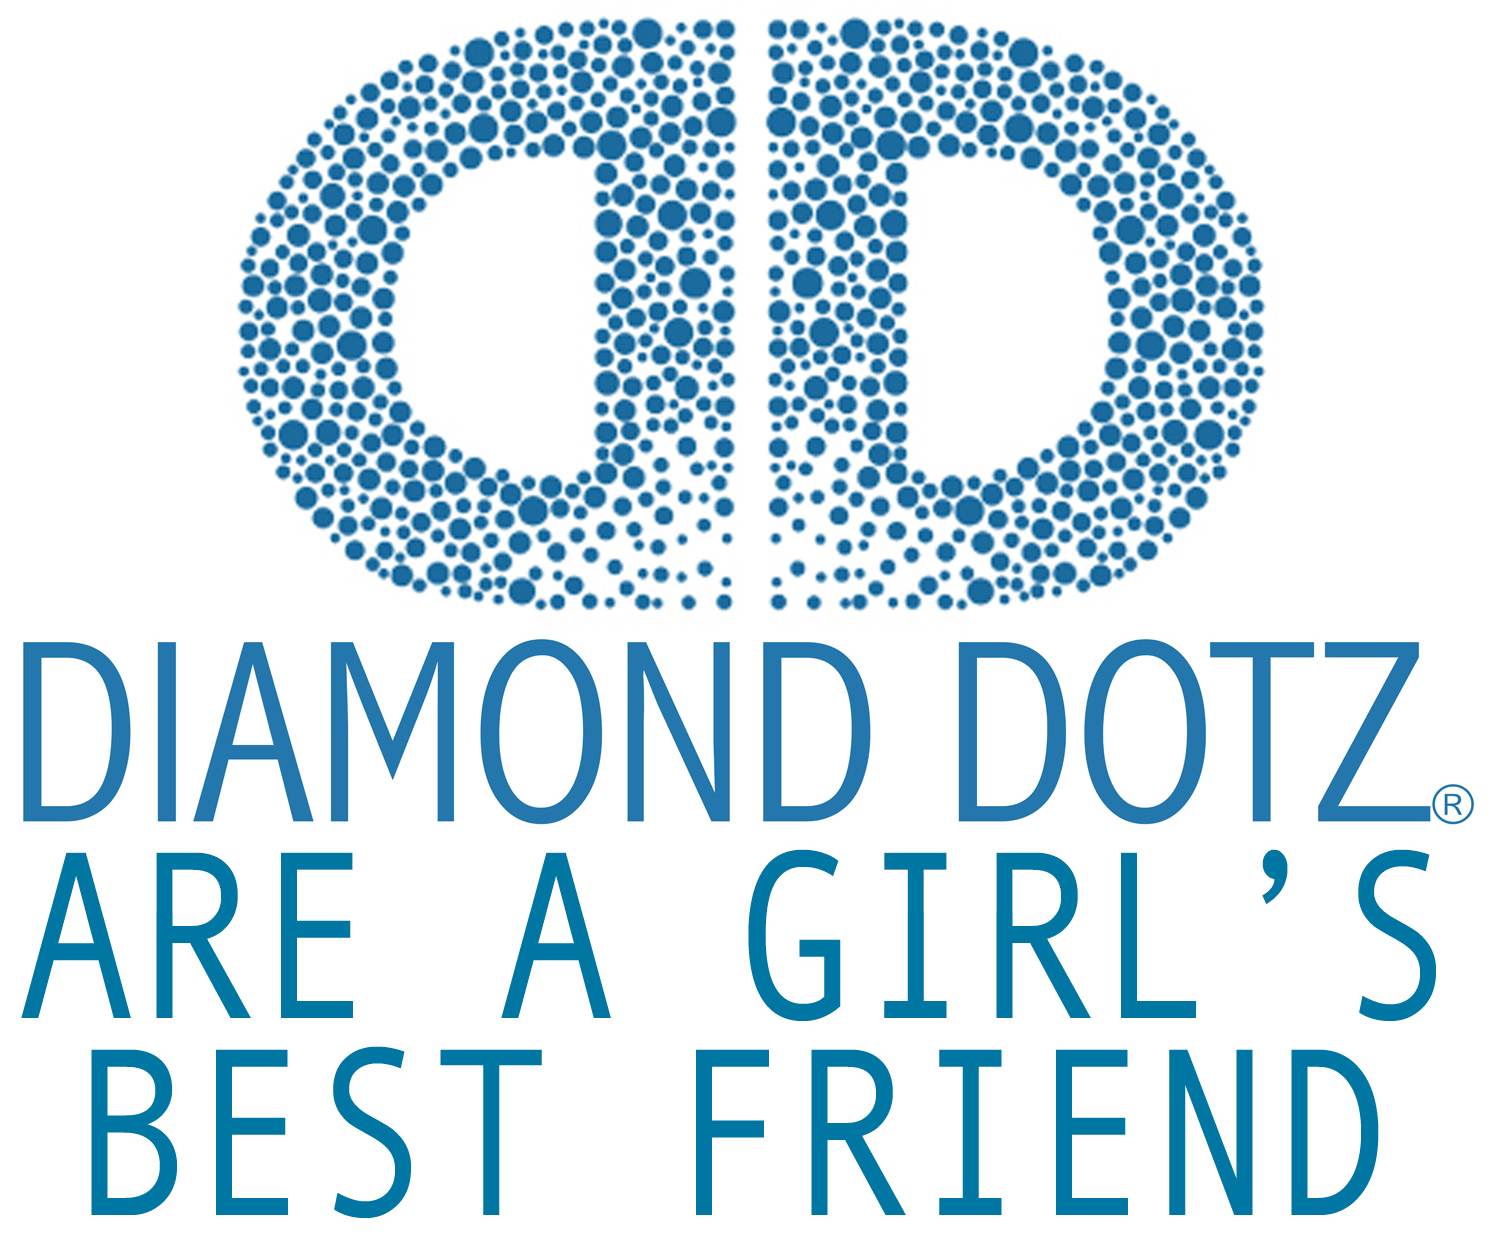 diamonddotzareagirlsbestfriend.jpg